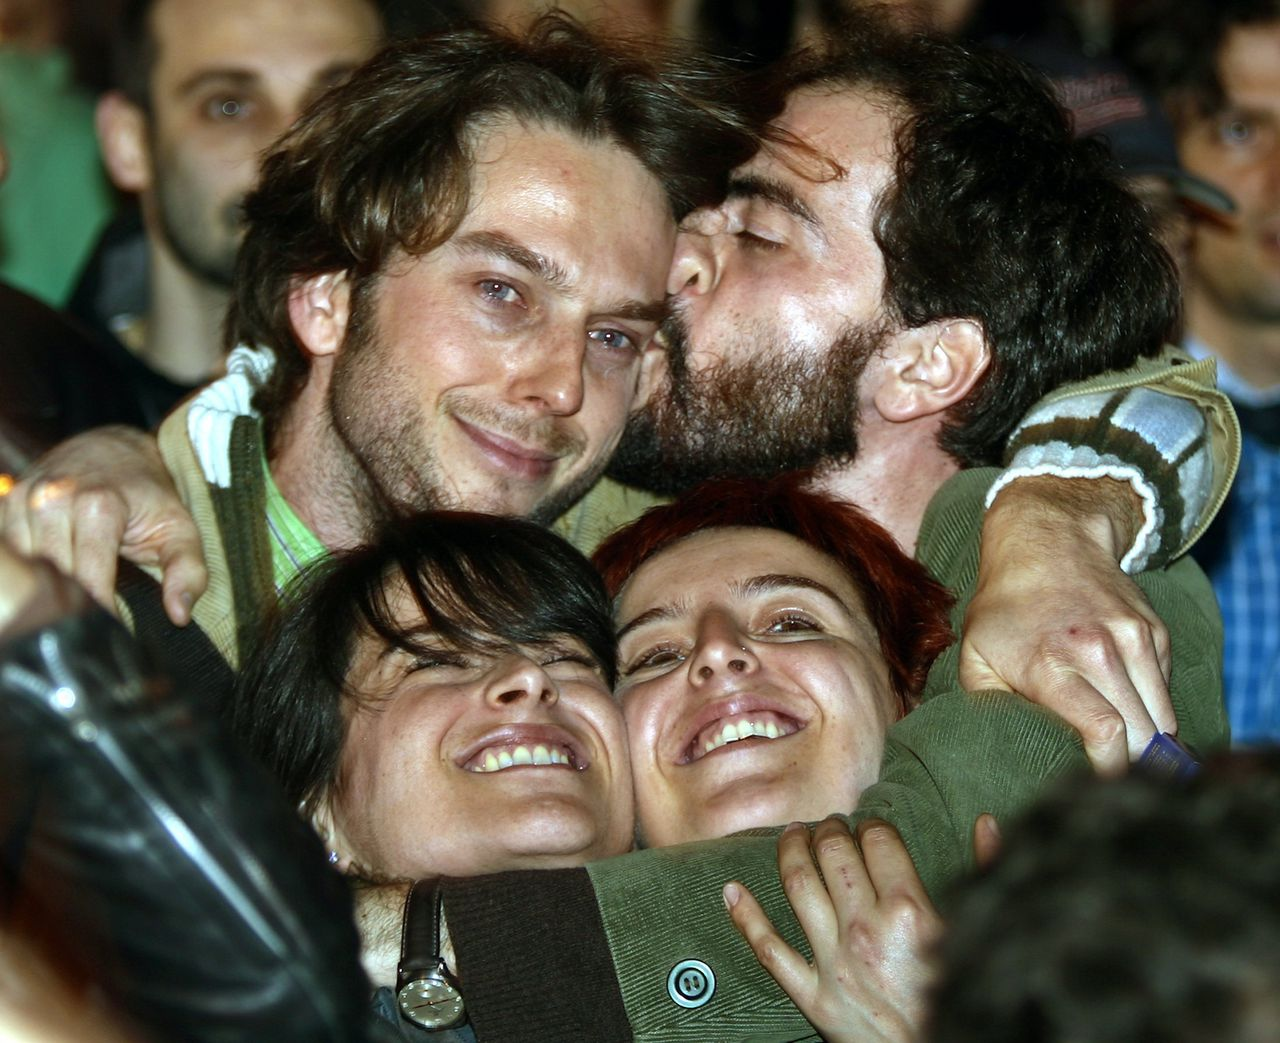 """Aanhangers van oppositieleider Prodi omhelzen elkaar op een kiezersbijeenkomst in Rome. Foto Reuters Supporters of Italy's opposition leader Romano Prodi's centre-left coalition embrace at a rally in central Rome April 10, 2006. Prodi claimed a knife-edge victory in Italy's general election on Tuesday, but Prime Minister Silvio Berlusconi's allies disputed the result and demanded a """"scrupulous"""" check of the count. REUTERS/Giampiero Sposito"""